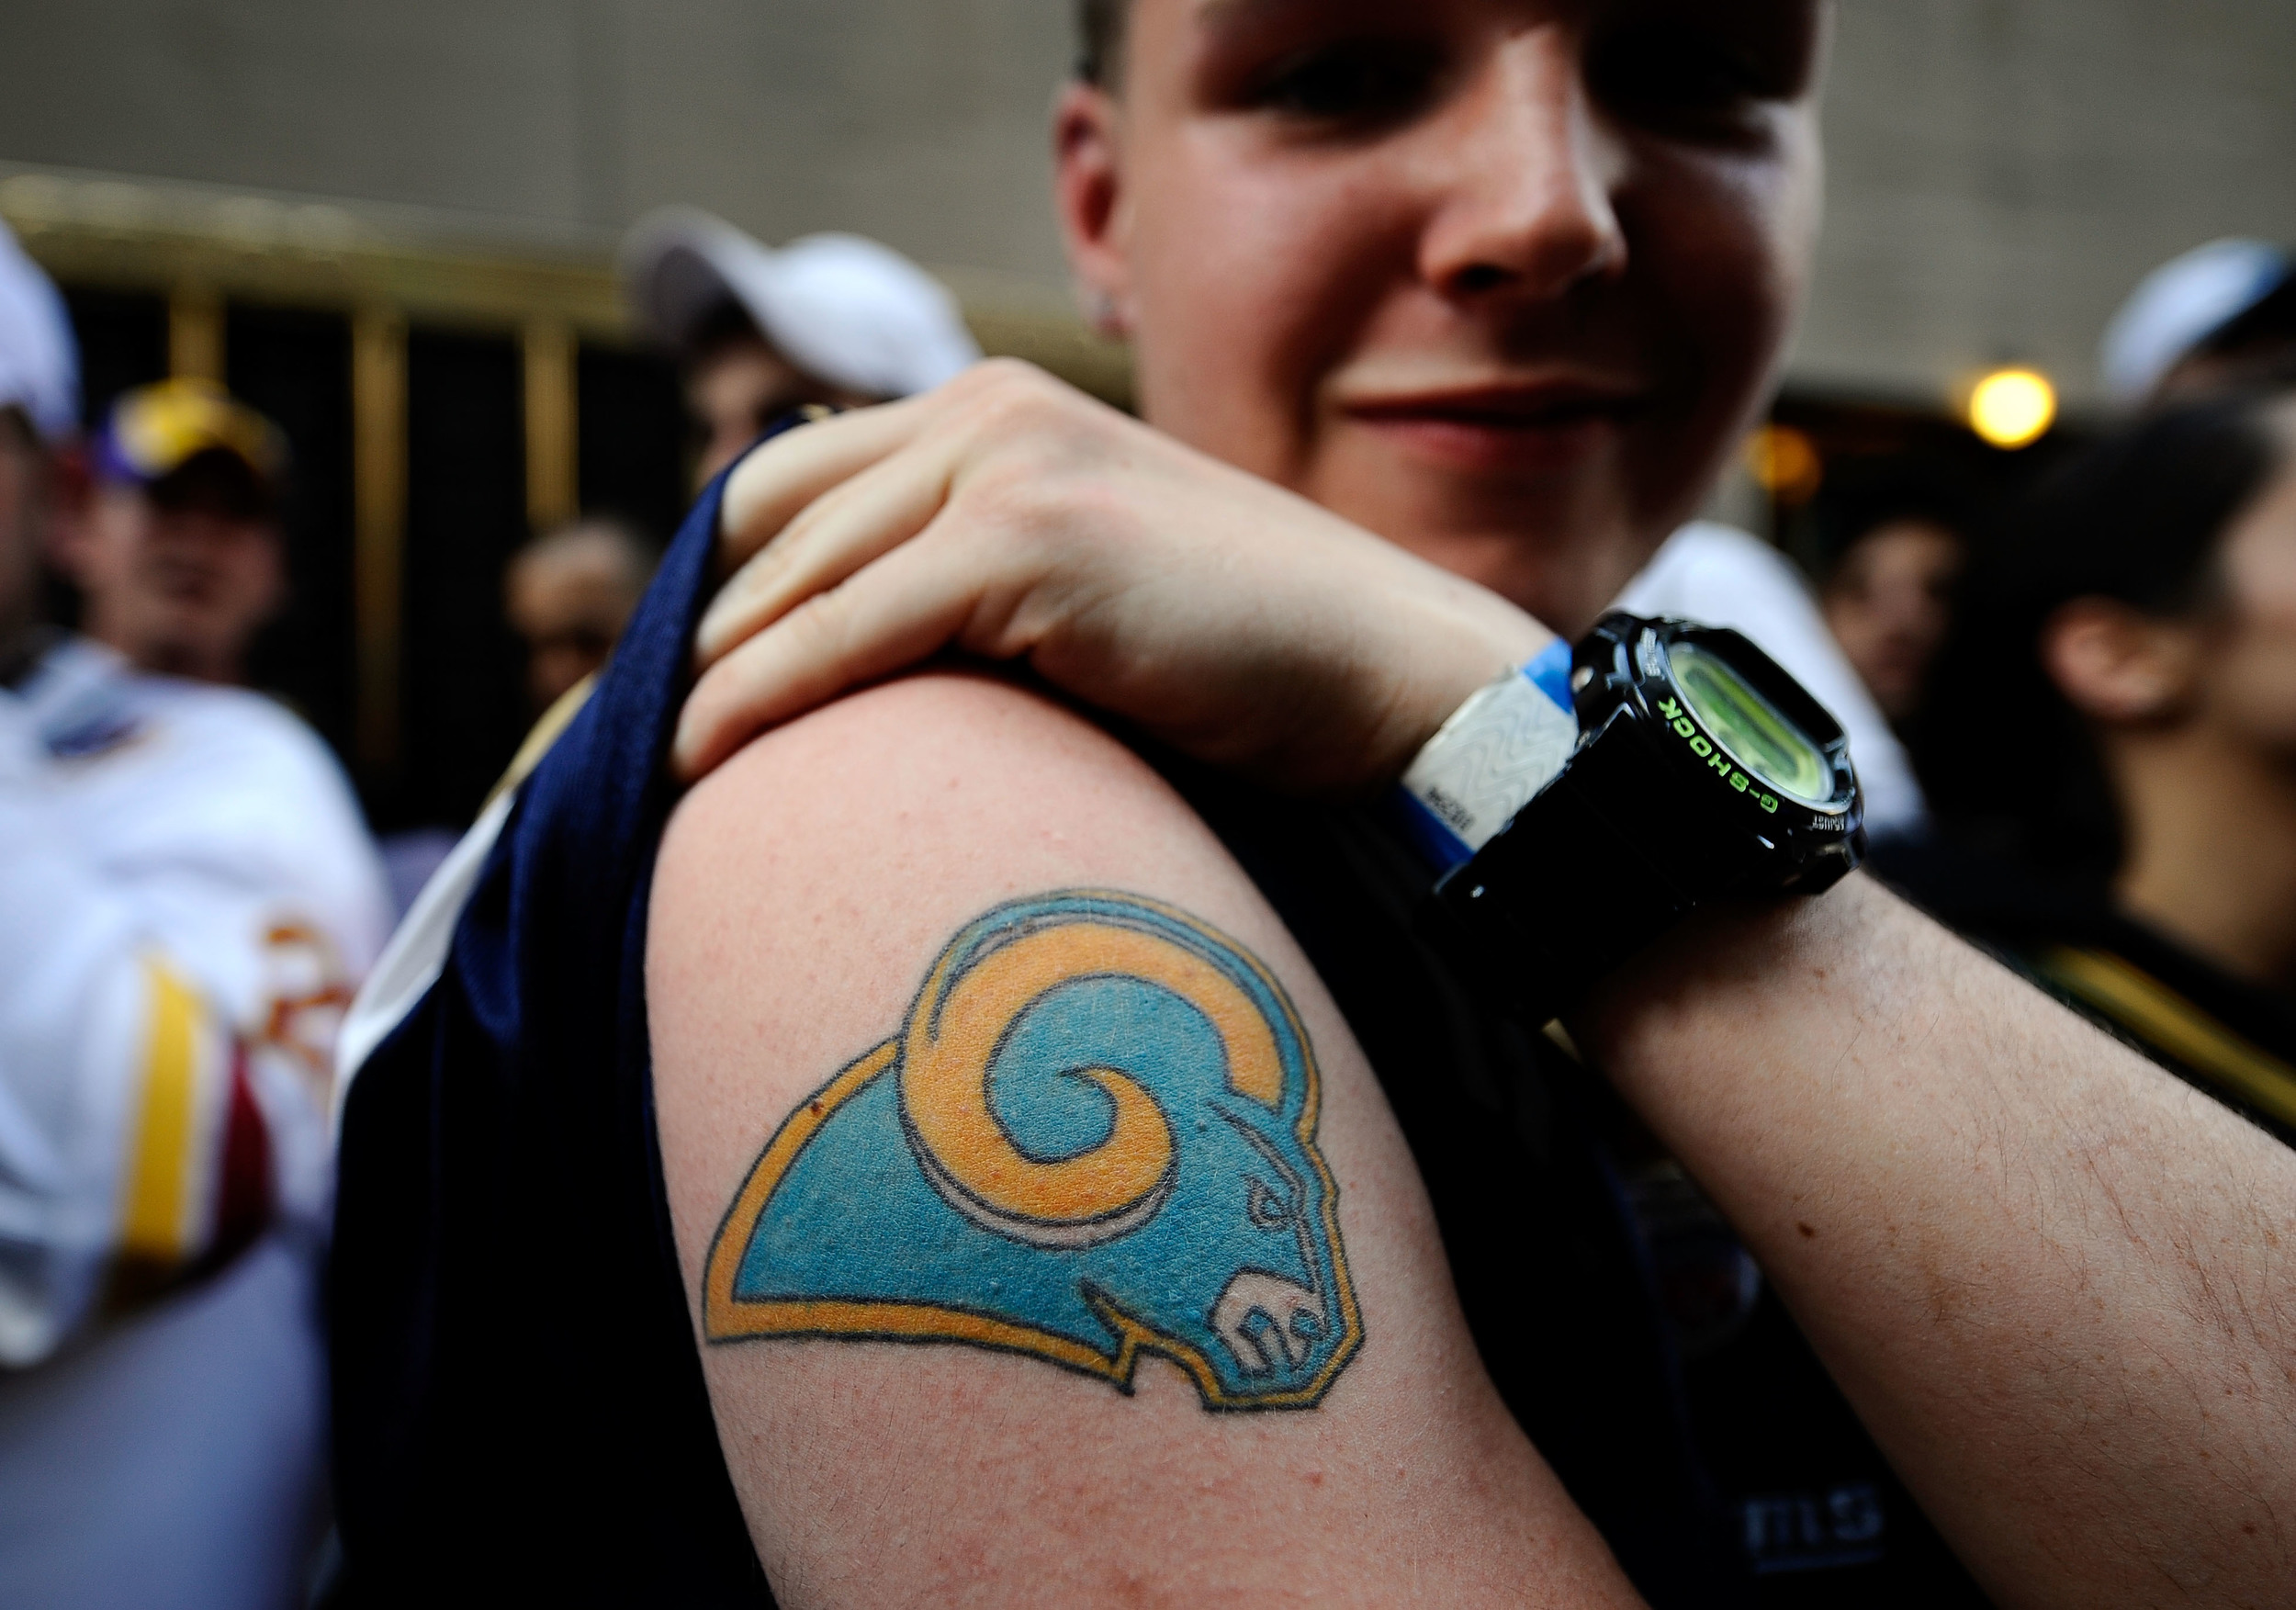 Heres Whats Really Happening To Your Skin When You Get A Tattoo